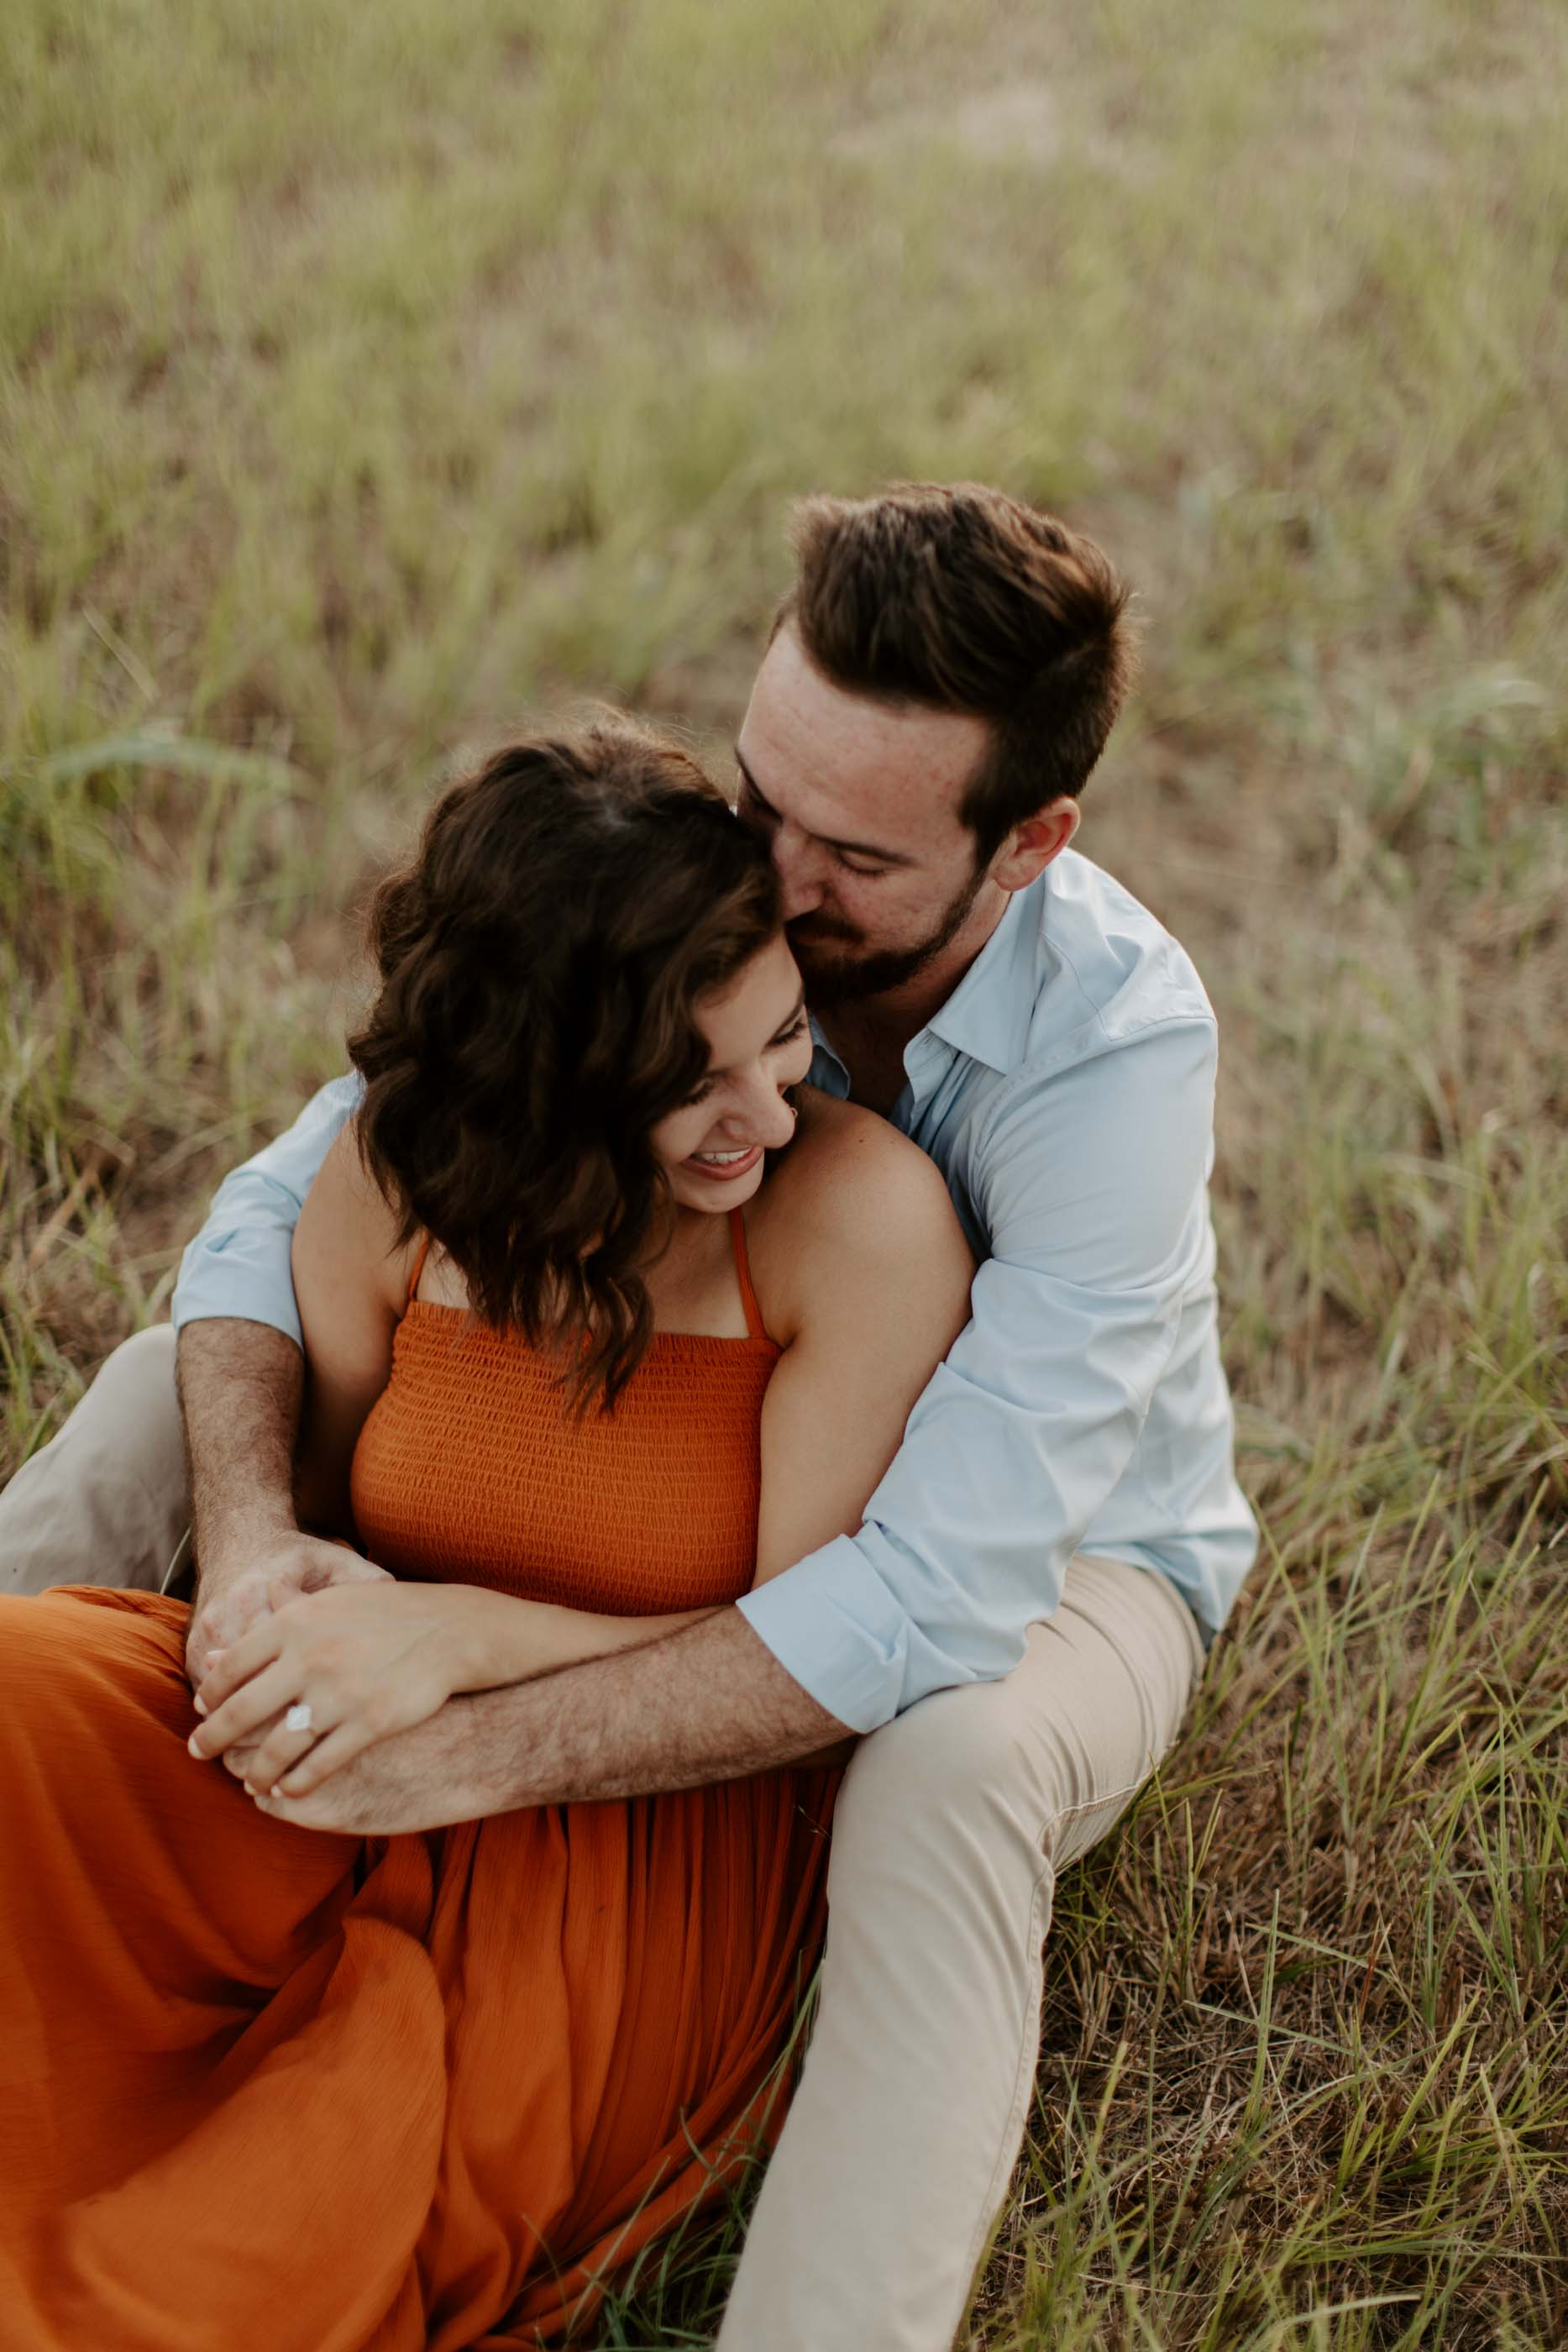 Example of ETX engagement photo